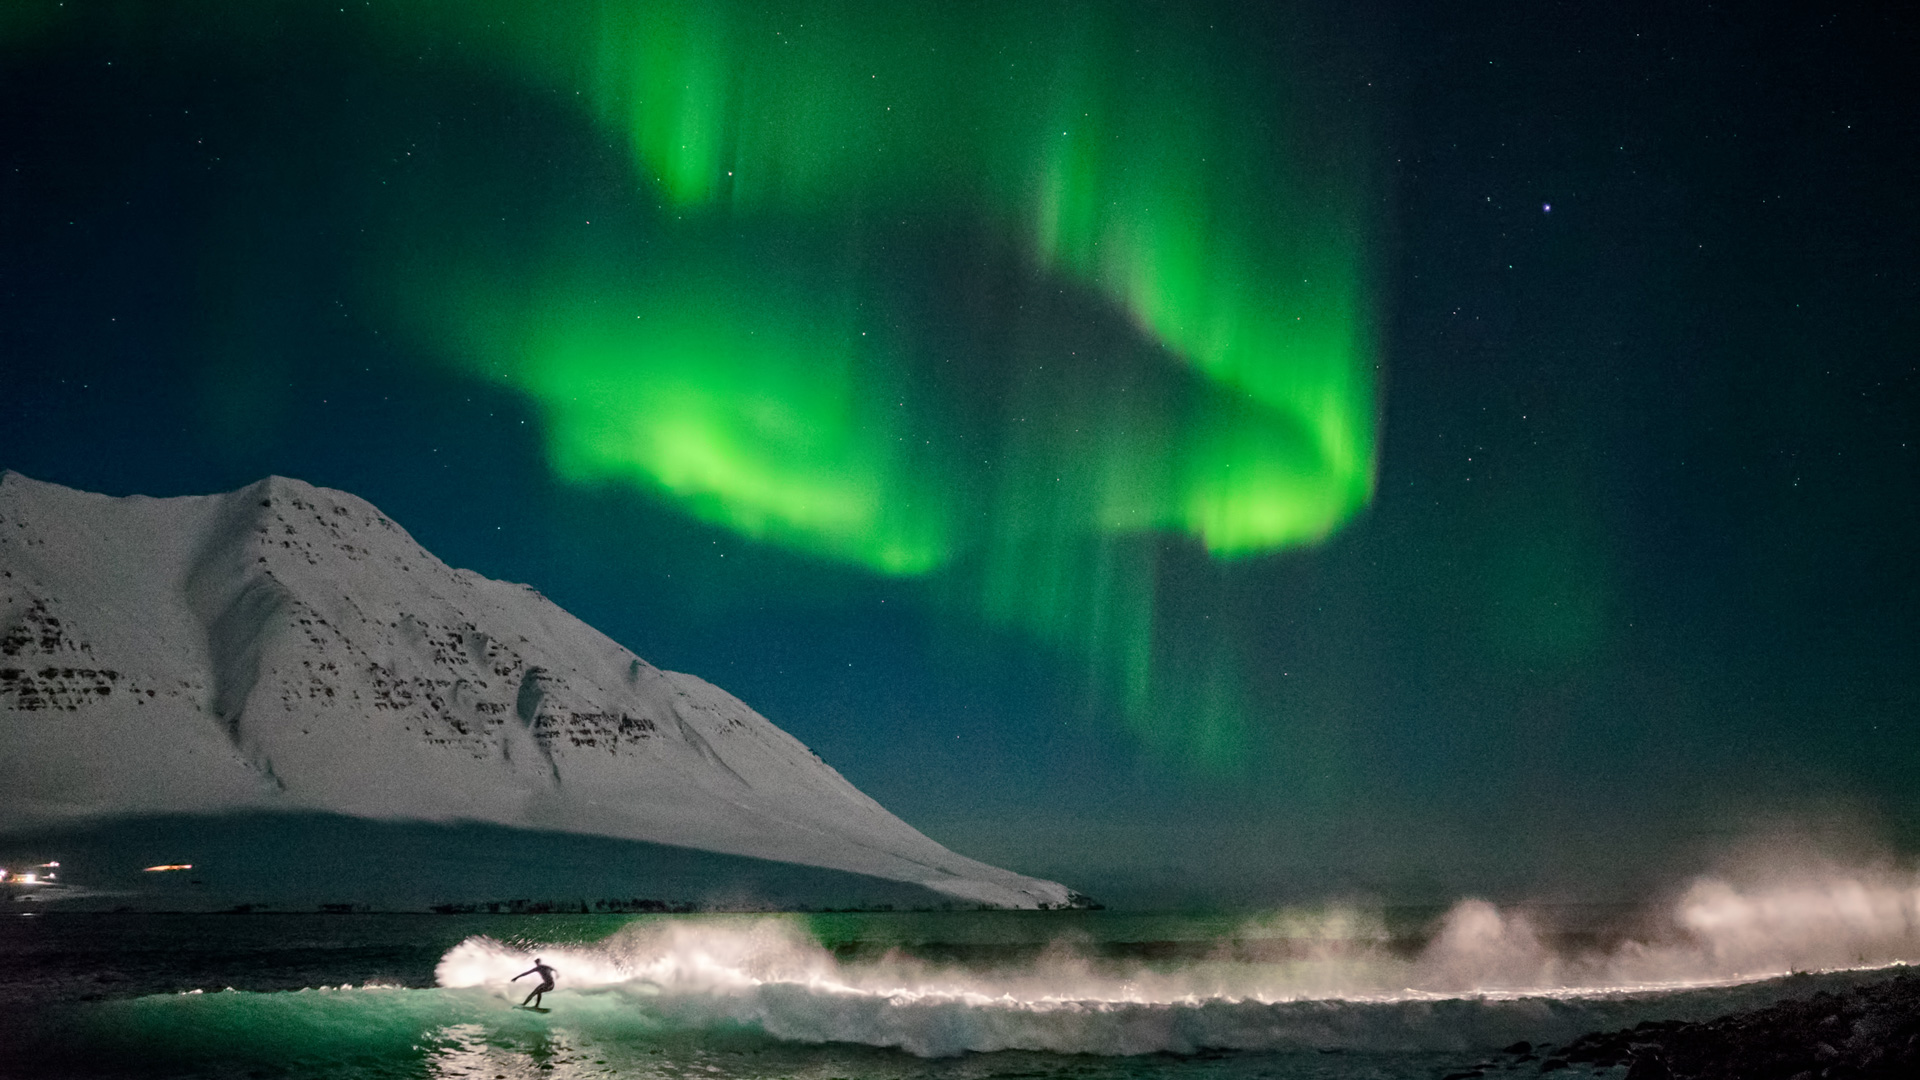 Chris Burkard's Photography